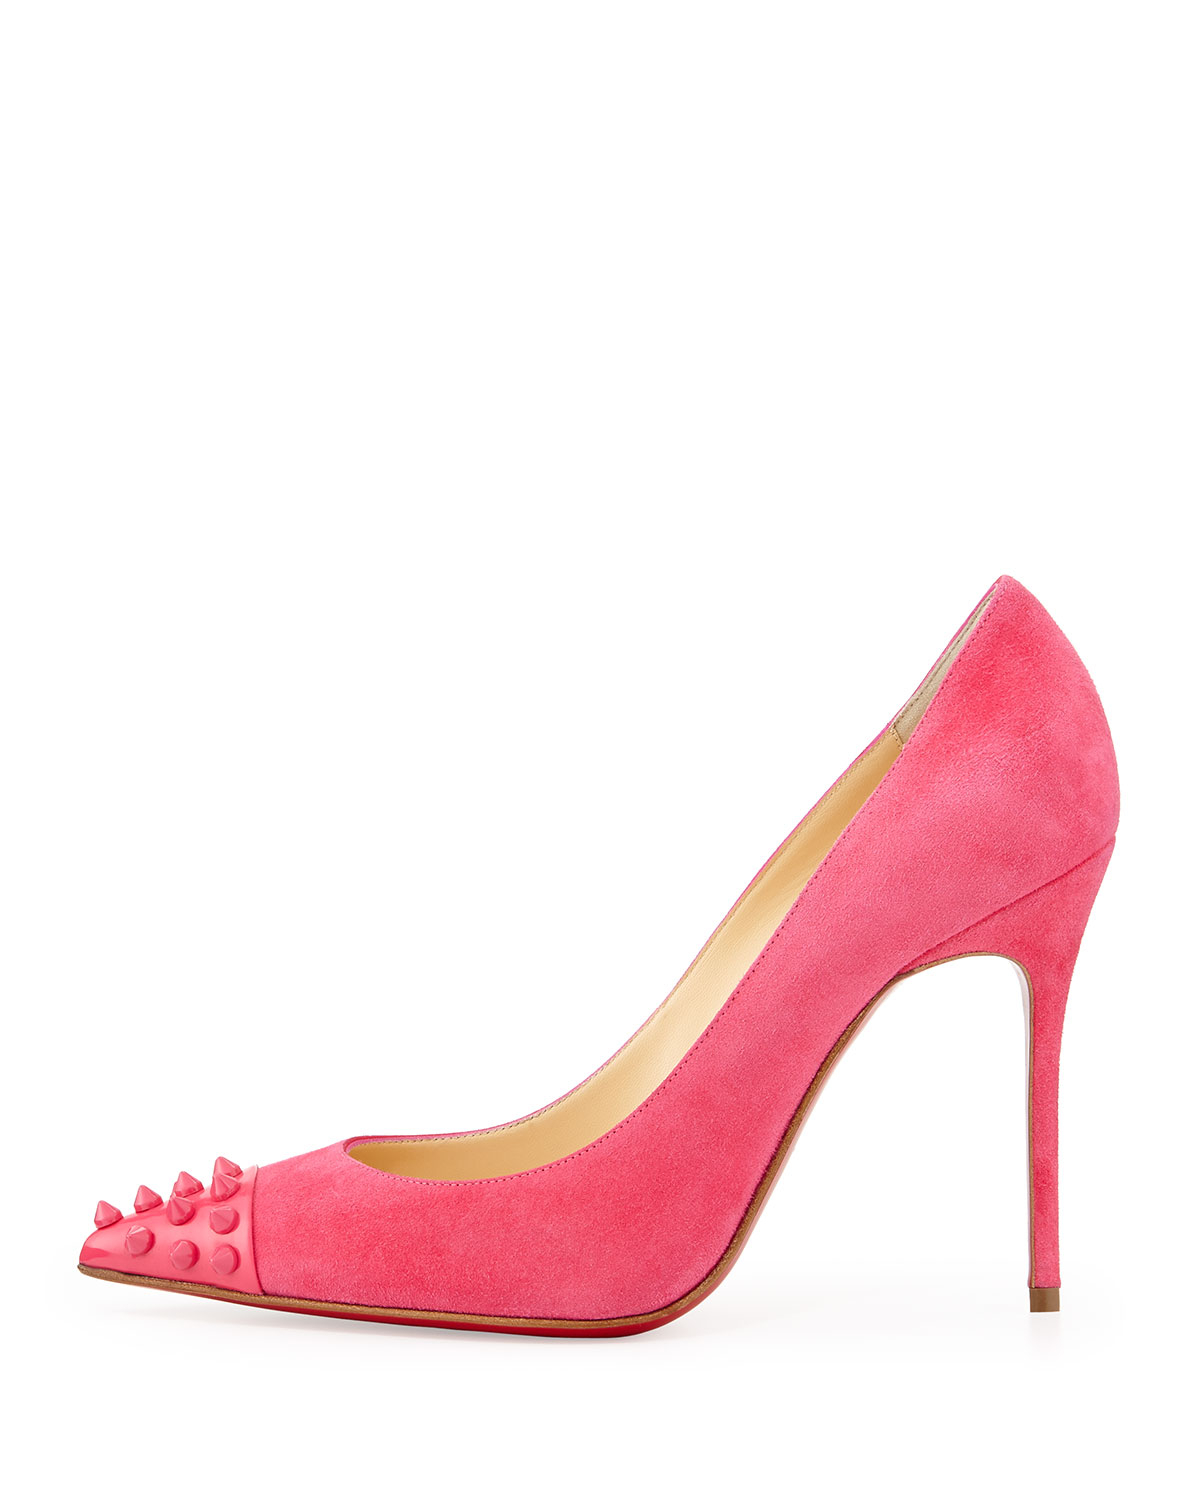 Christian louboutin Geo Spike Point-Toe Red Sole Pump in Pink | Lyst